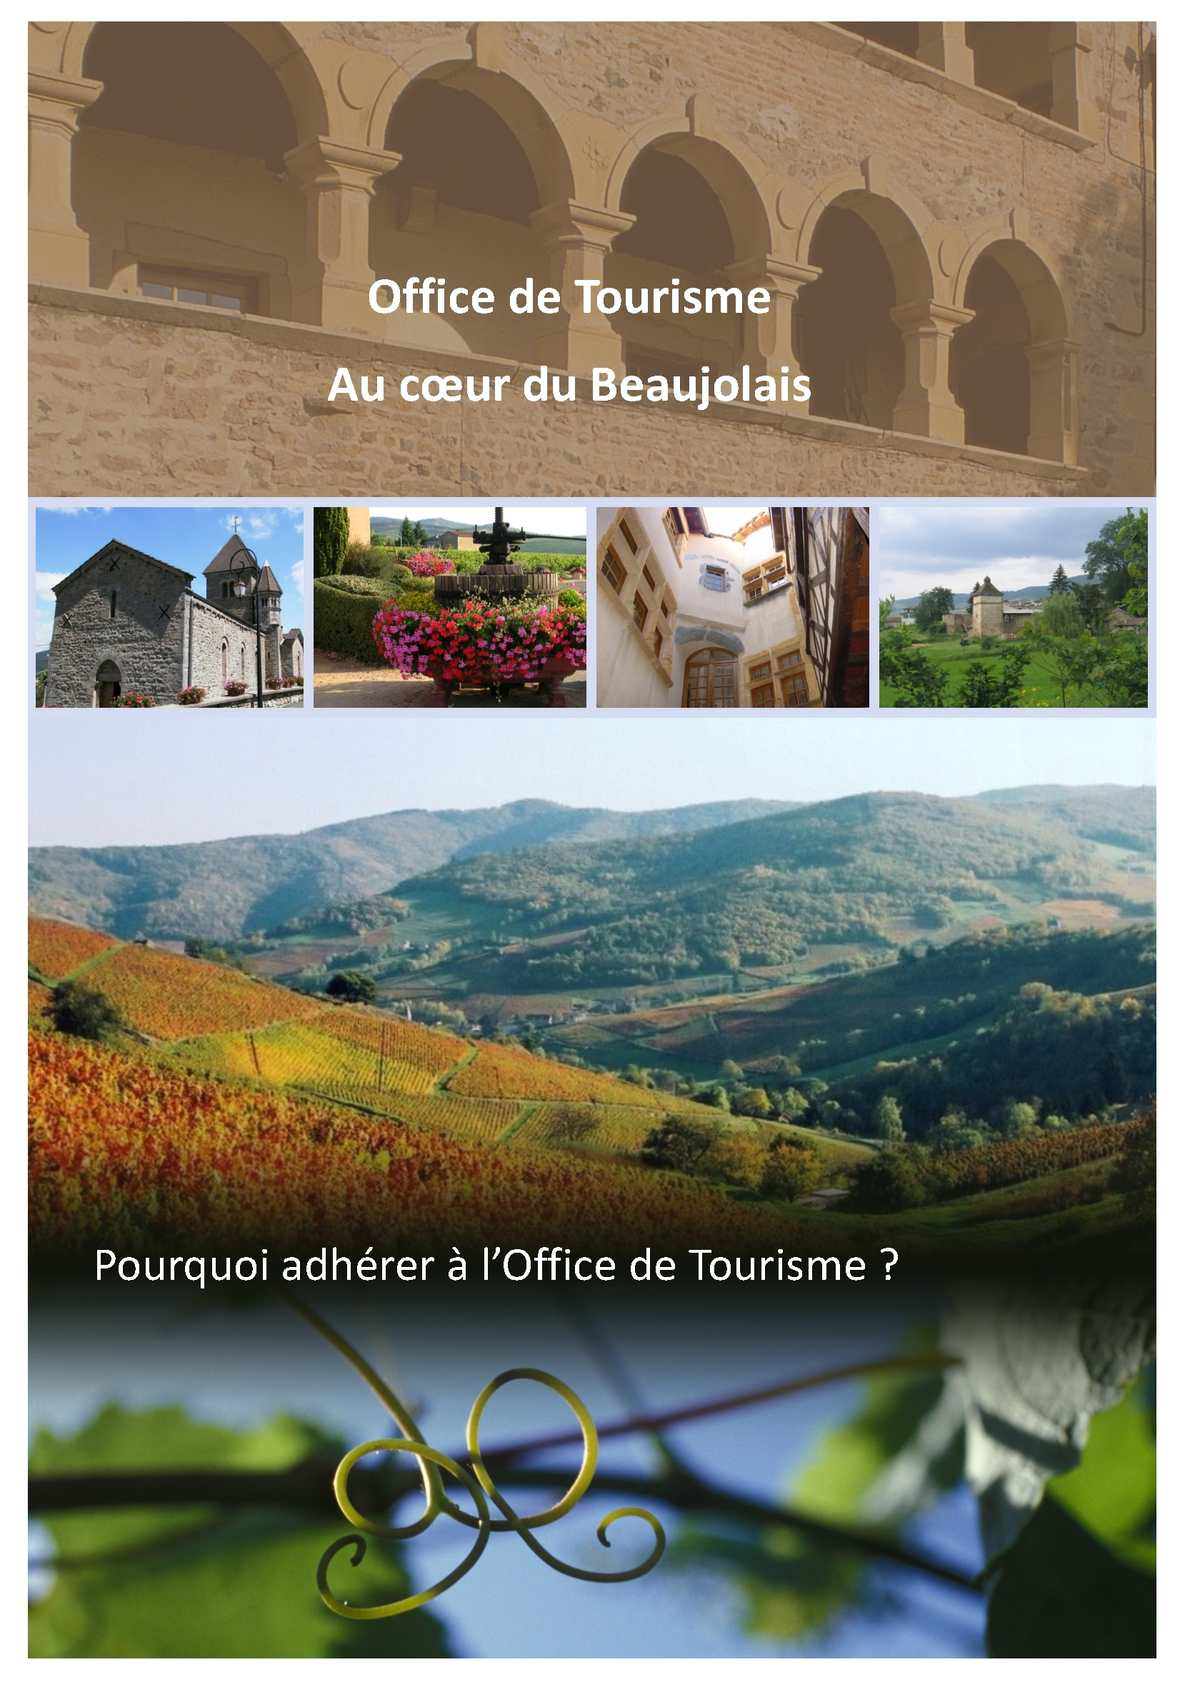 Calam o guide de l 39 adh rent office de tourisme au coeur du beaujolais - Office du tourisme de montgenevre ...